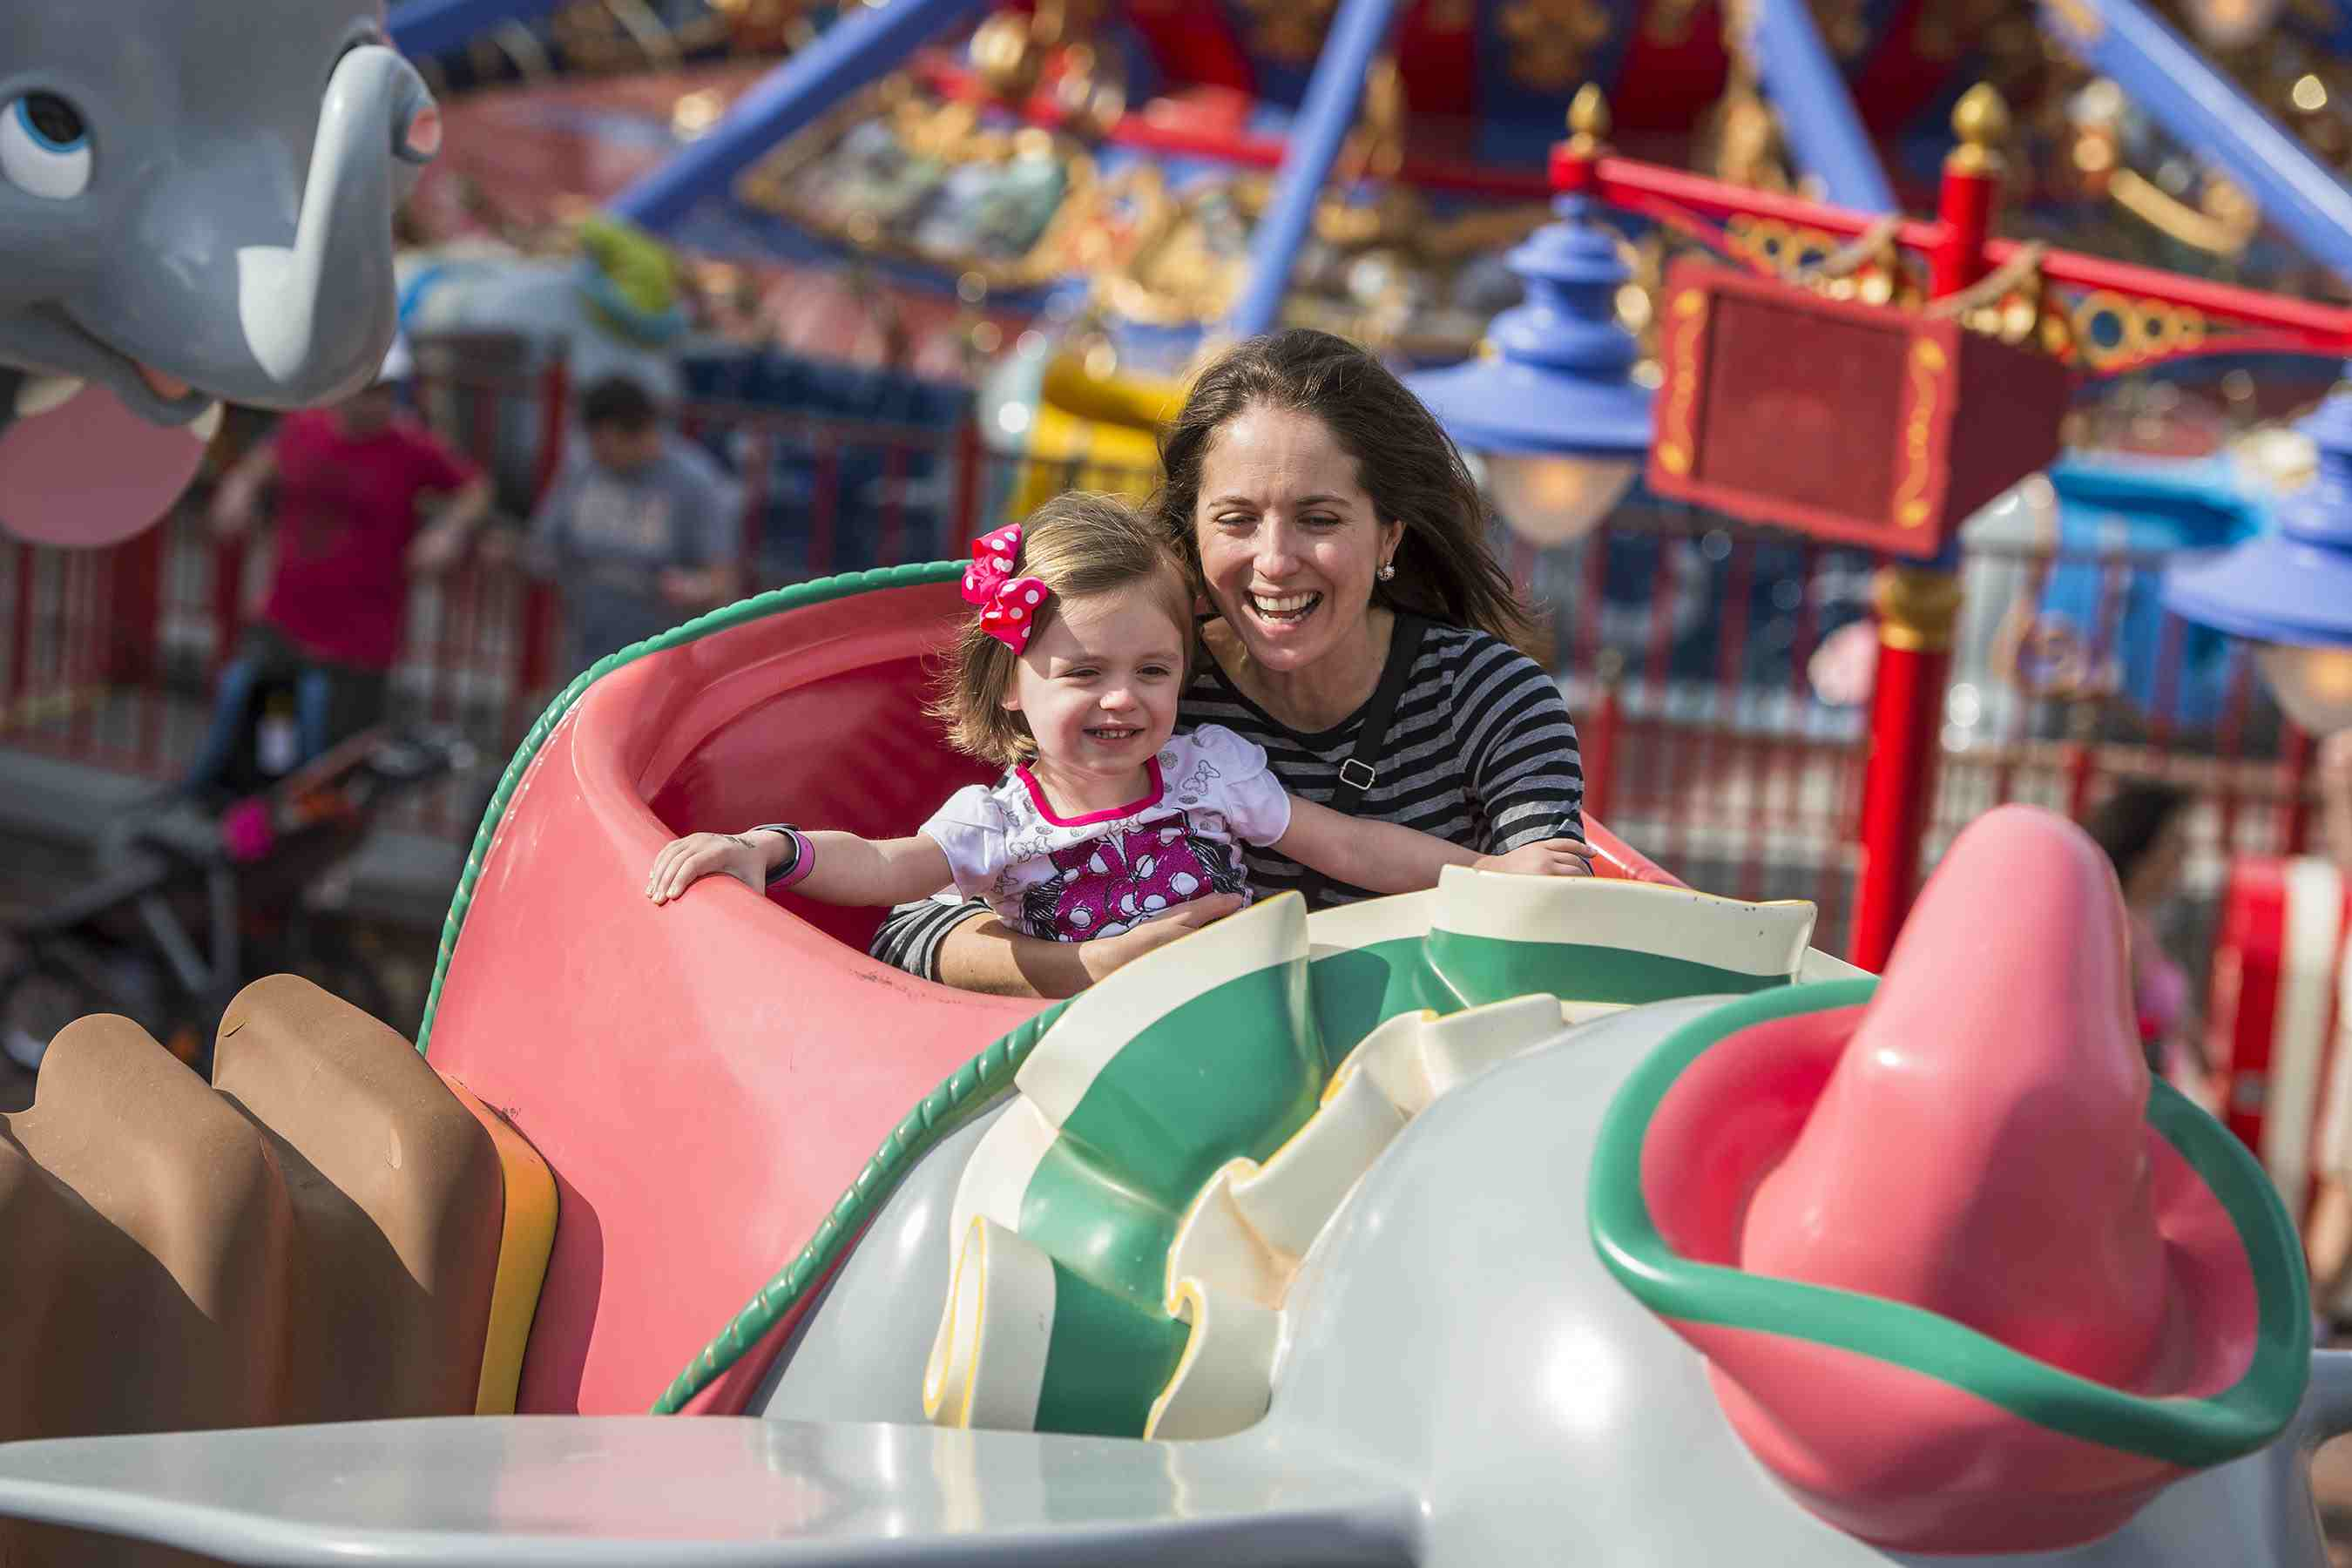 The Best Disney World Rides For Younger Kids